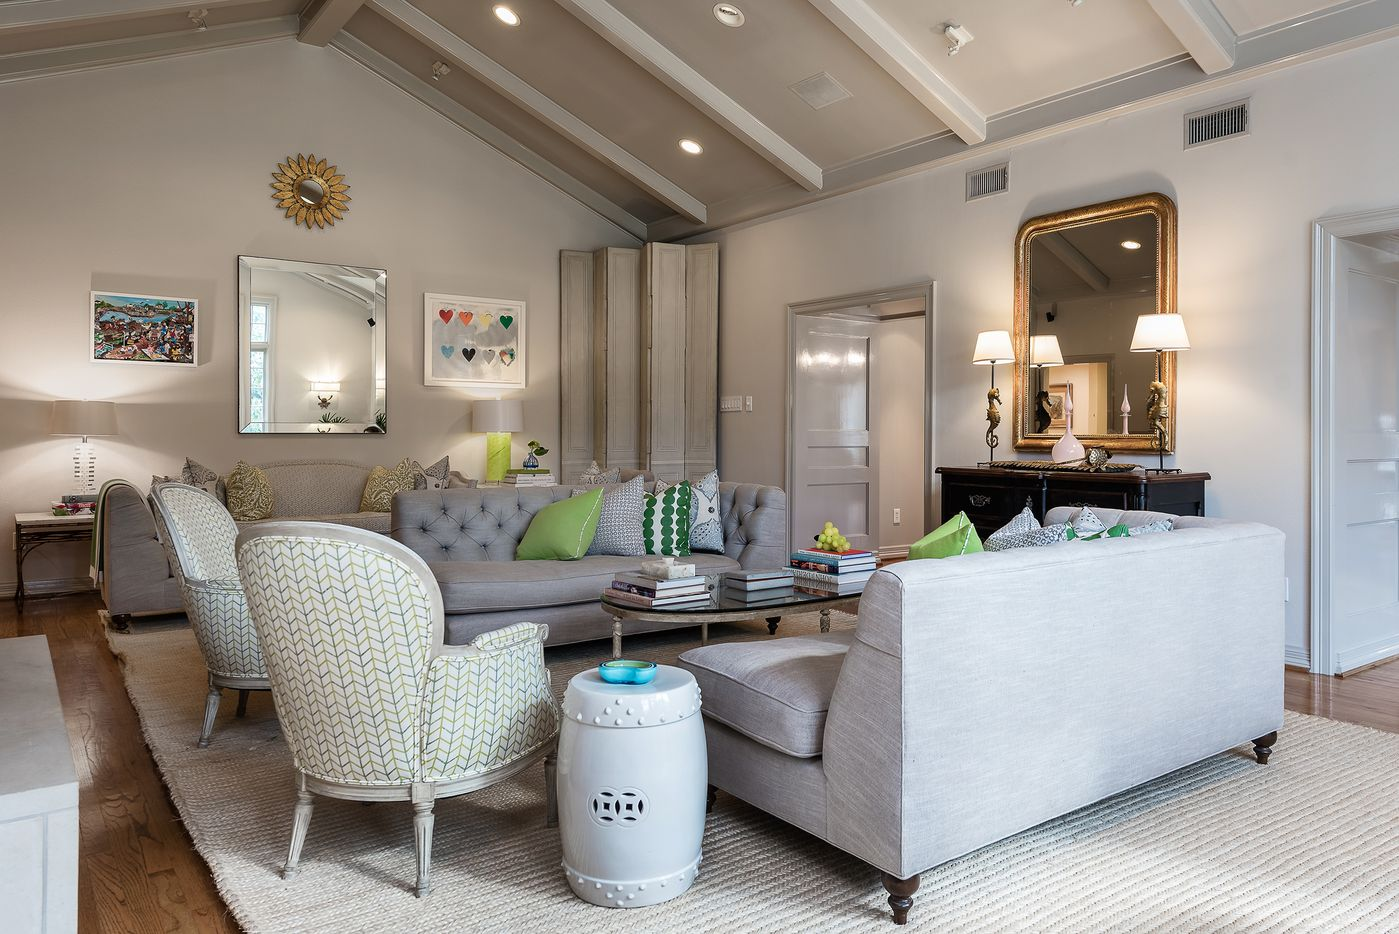 Living space at 5845 Lupton Drive.